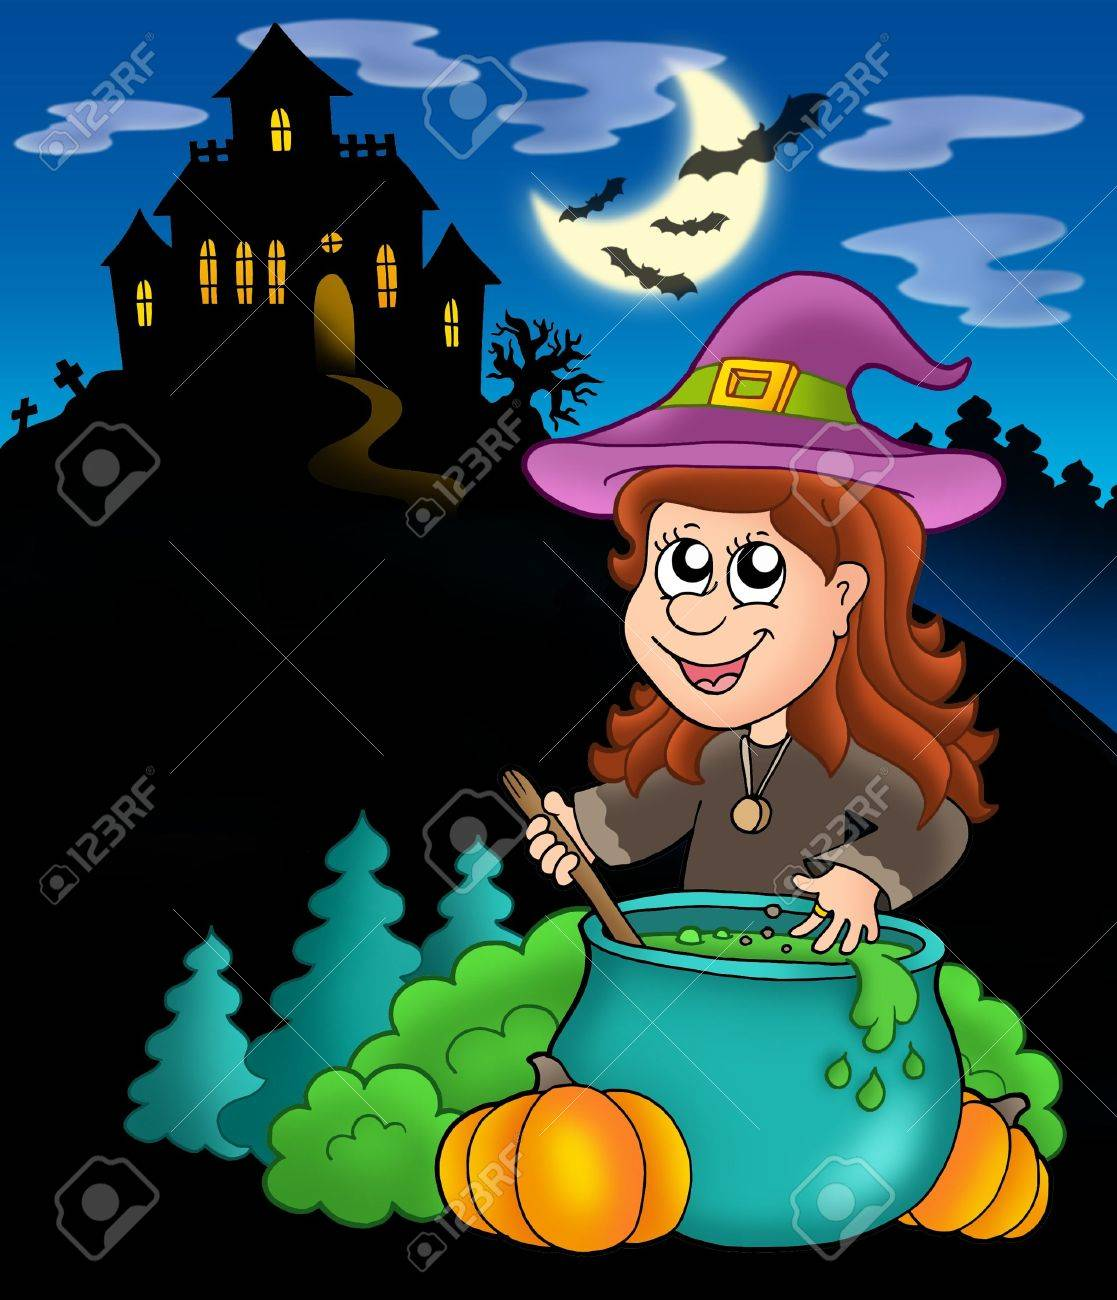 Wizard girl with haunted house - color illustration. Stock Photo - 5224447